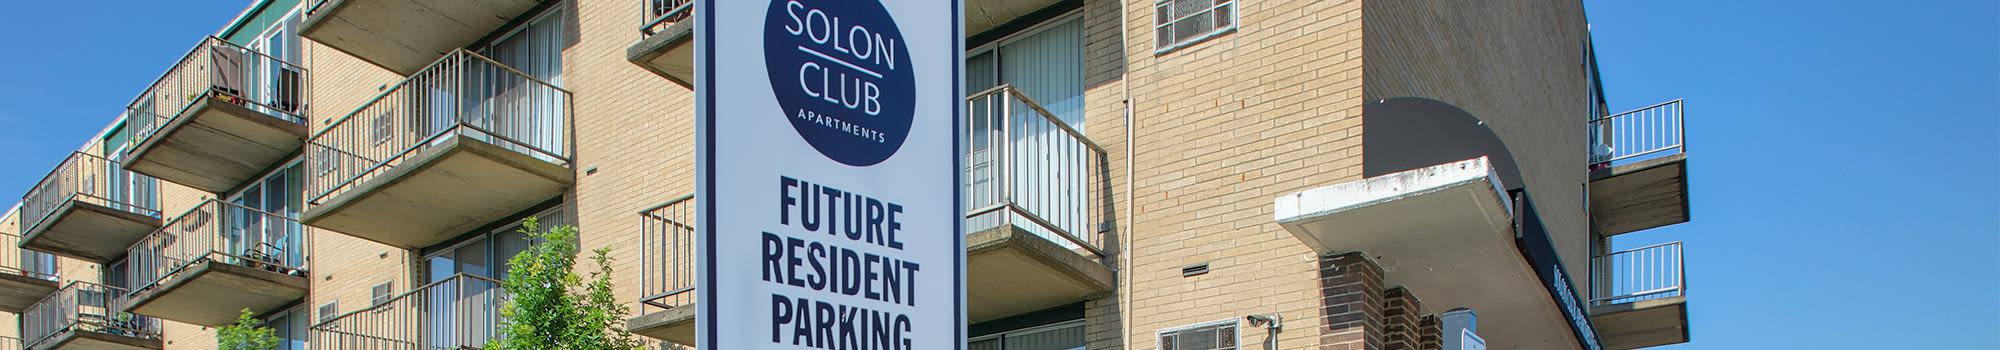 Great amenities at Solon Club Apartments